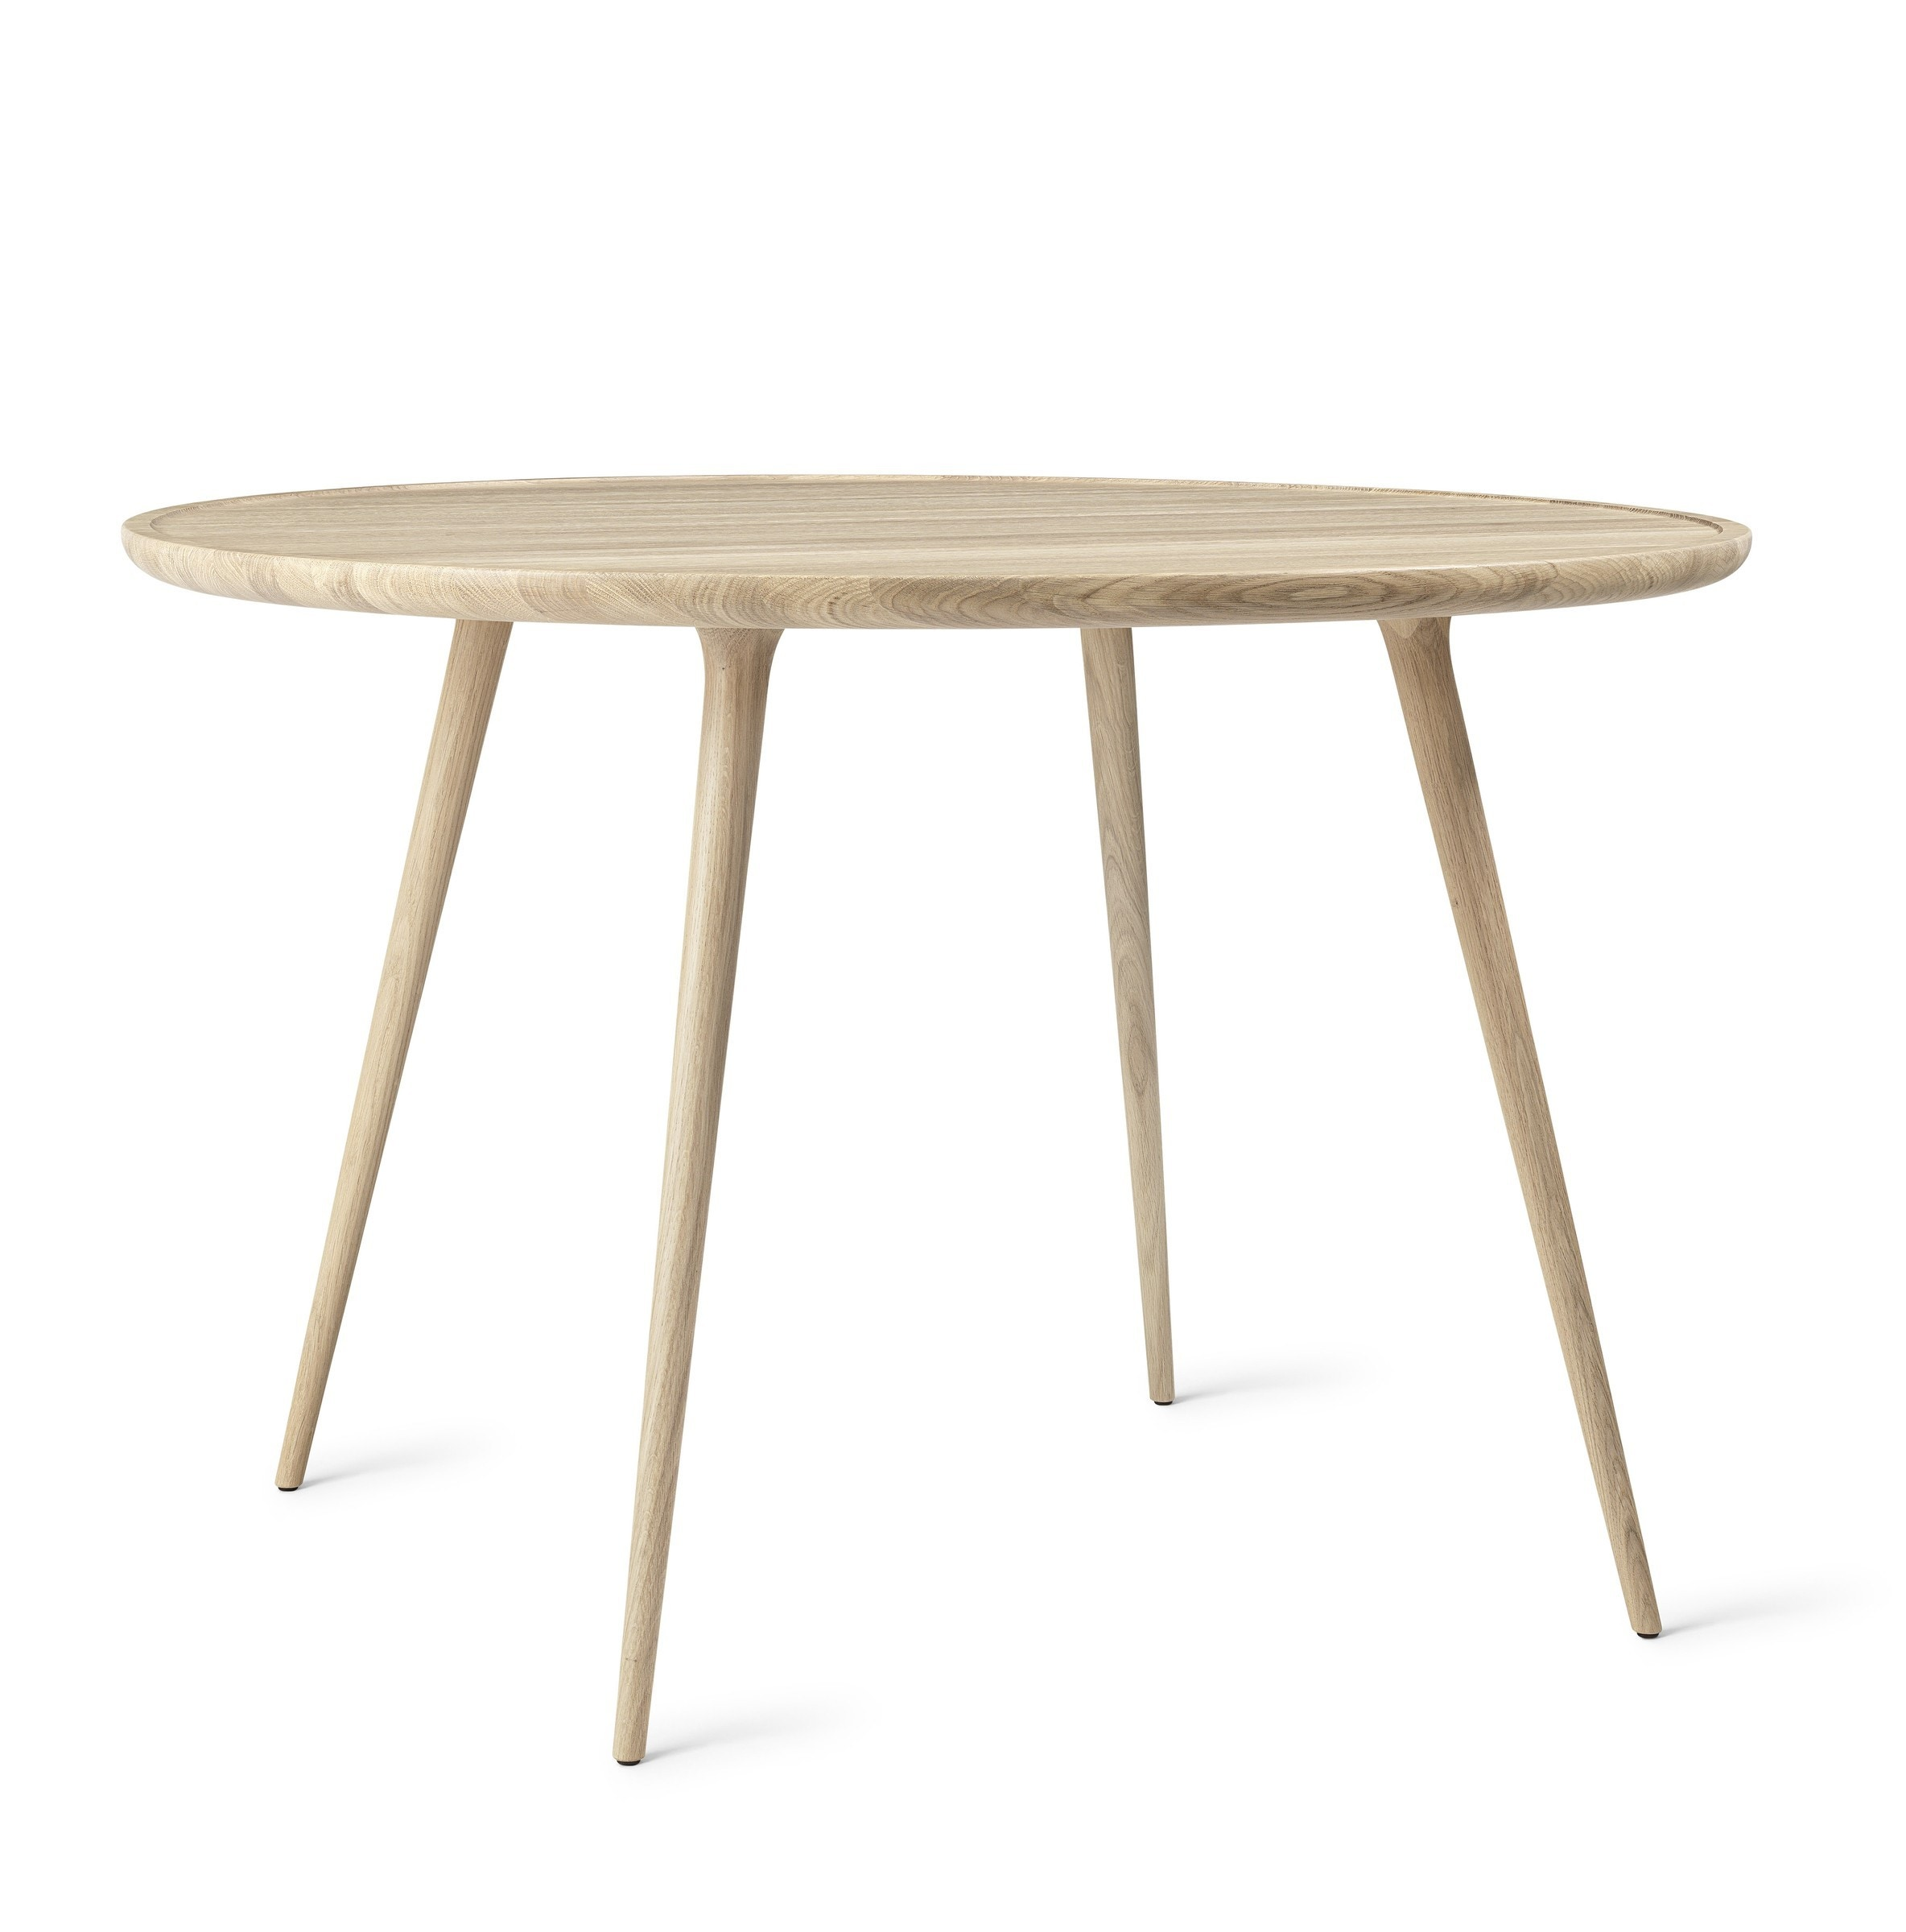 Mater Accent Dining Table - Mat Lacqured Oak